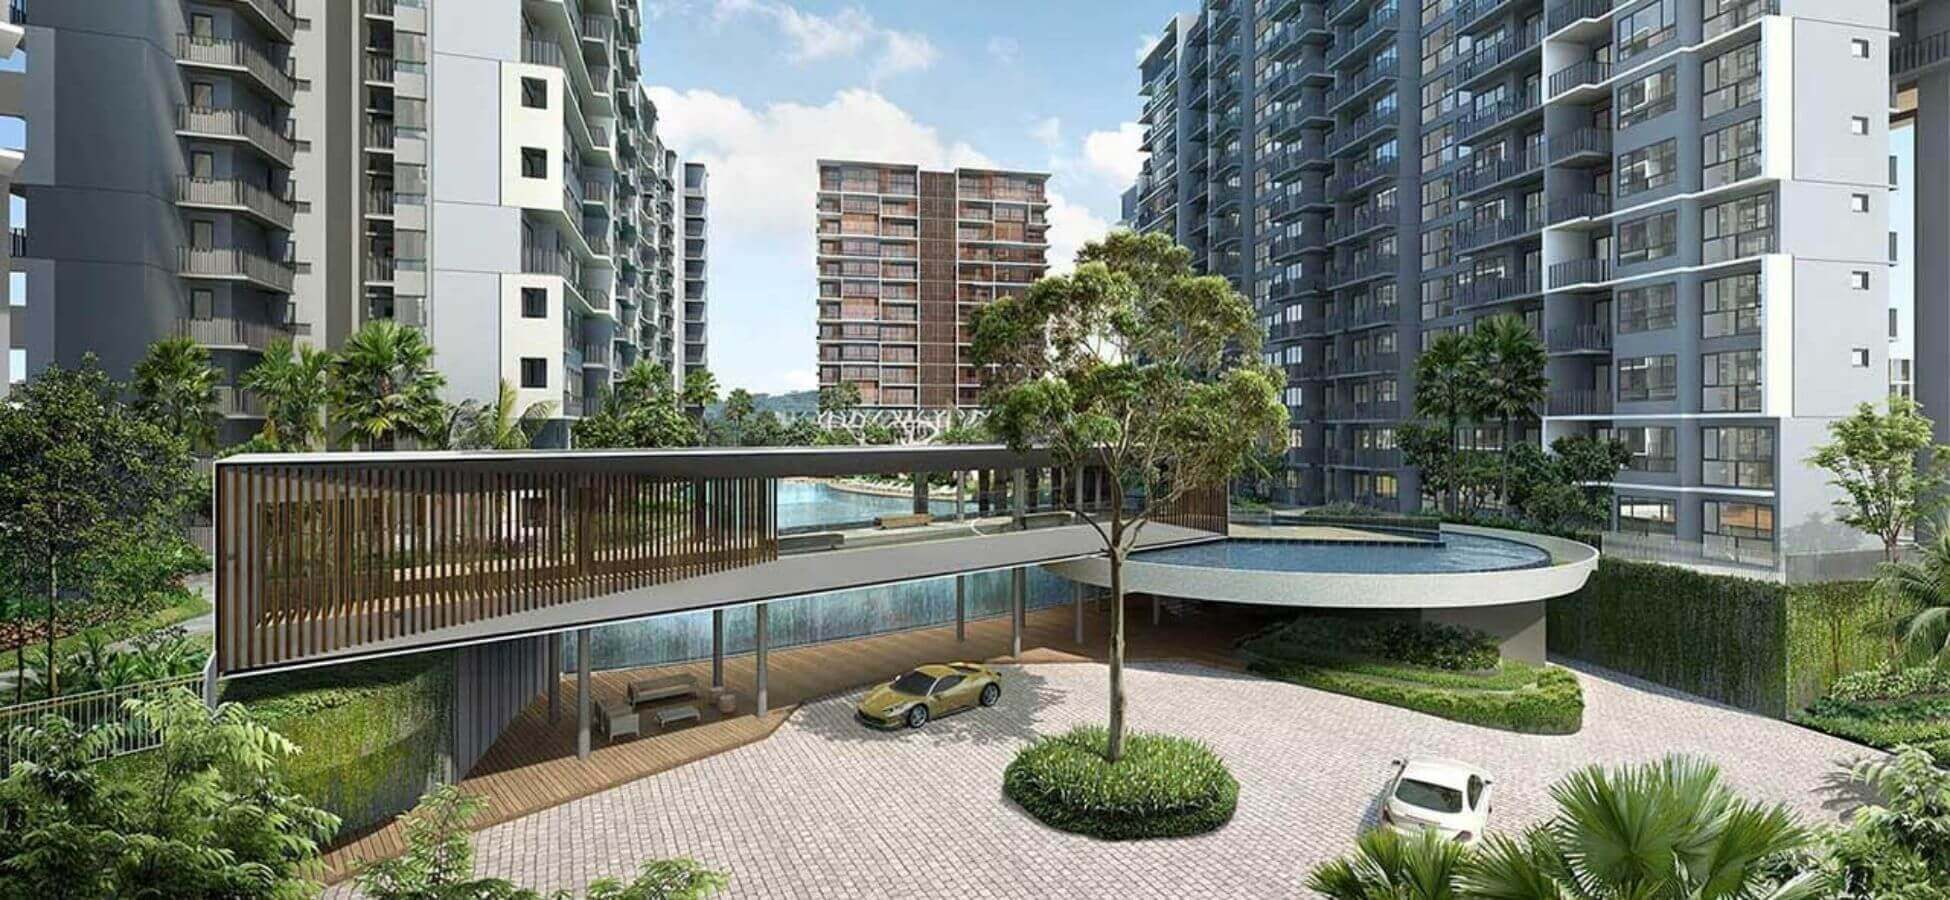 <span>Grandeur Park Residences</span> is Doorstep<br>to MRT D16 Development